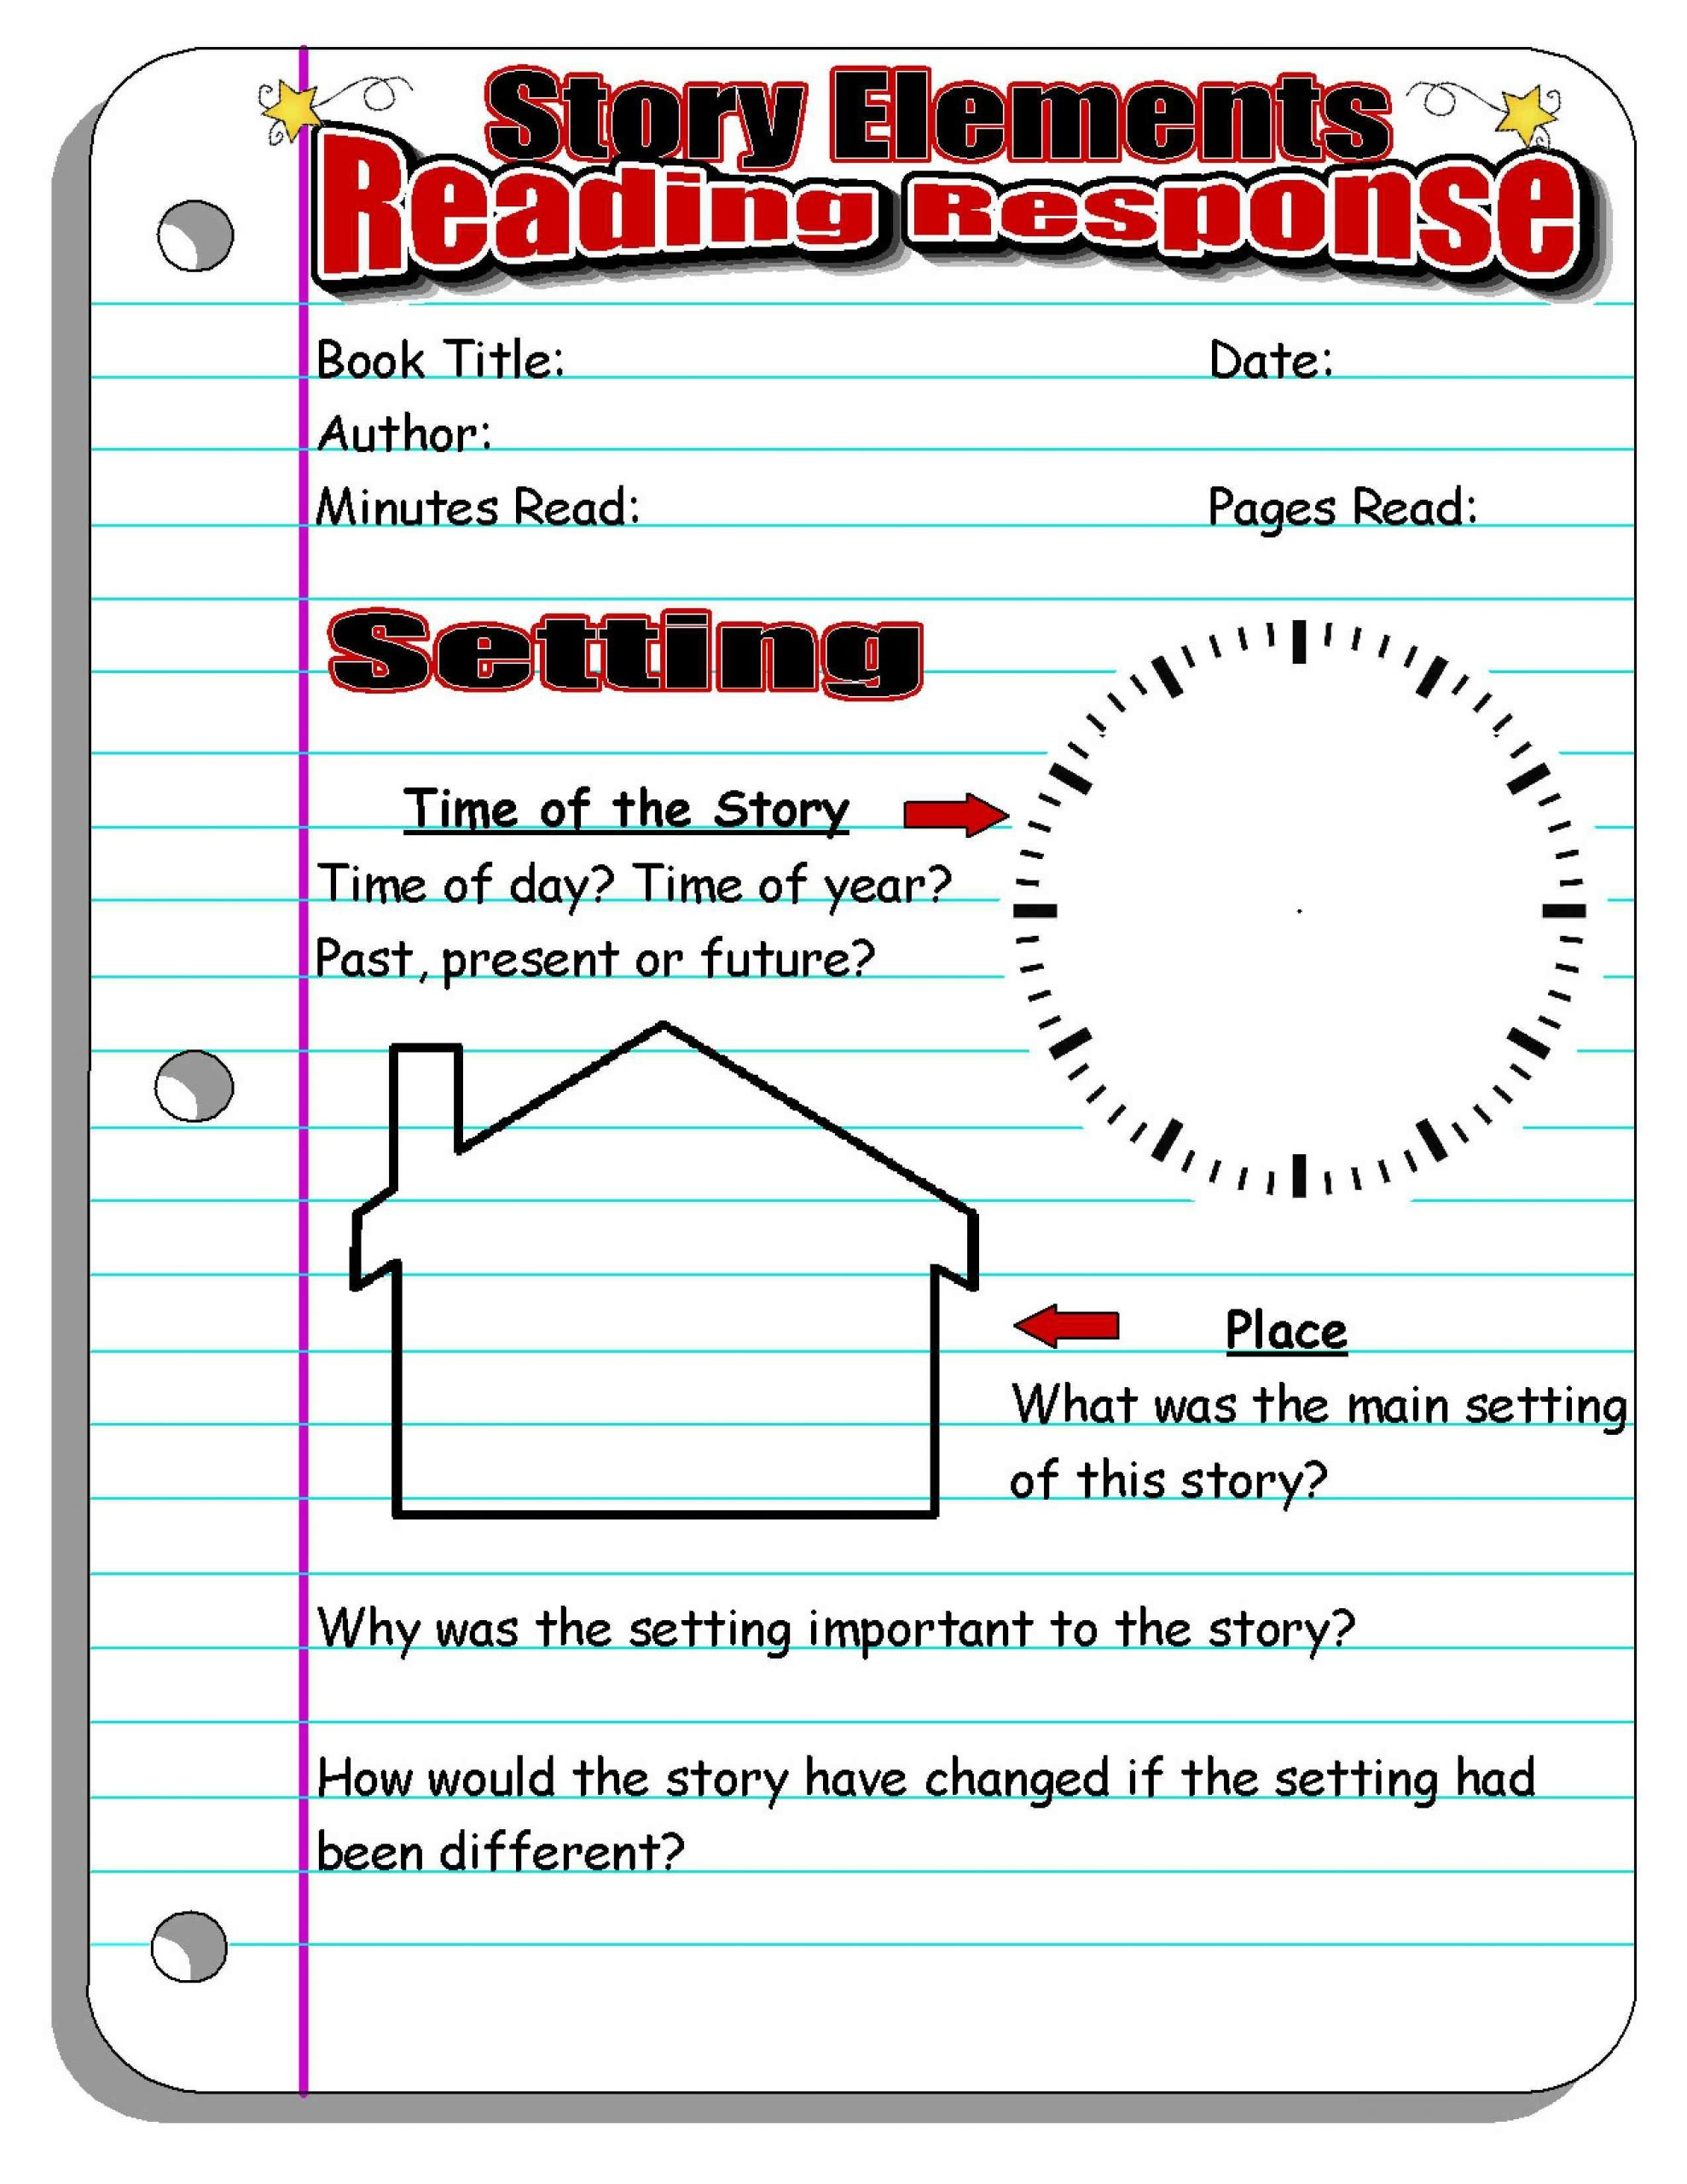 Story Elements Worksheets 4th Grade Story Elements Worksheets 4th Grade